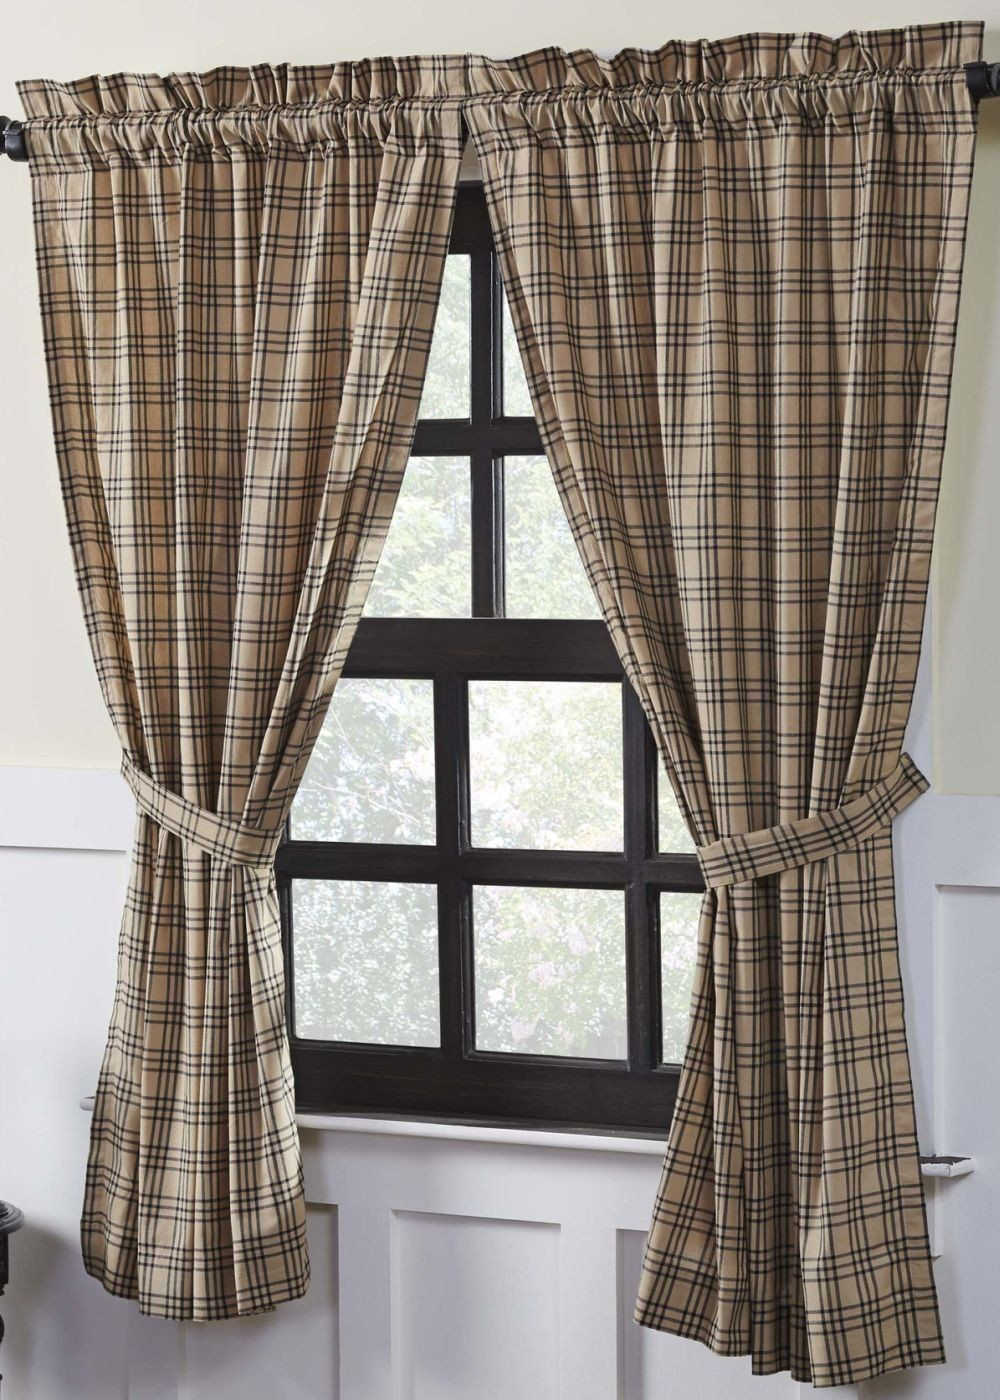 Sawyer mill curtain short panels in milling kitchen window